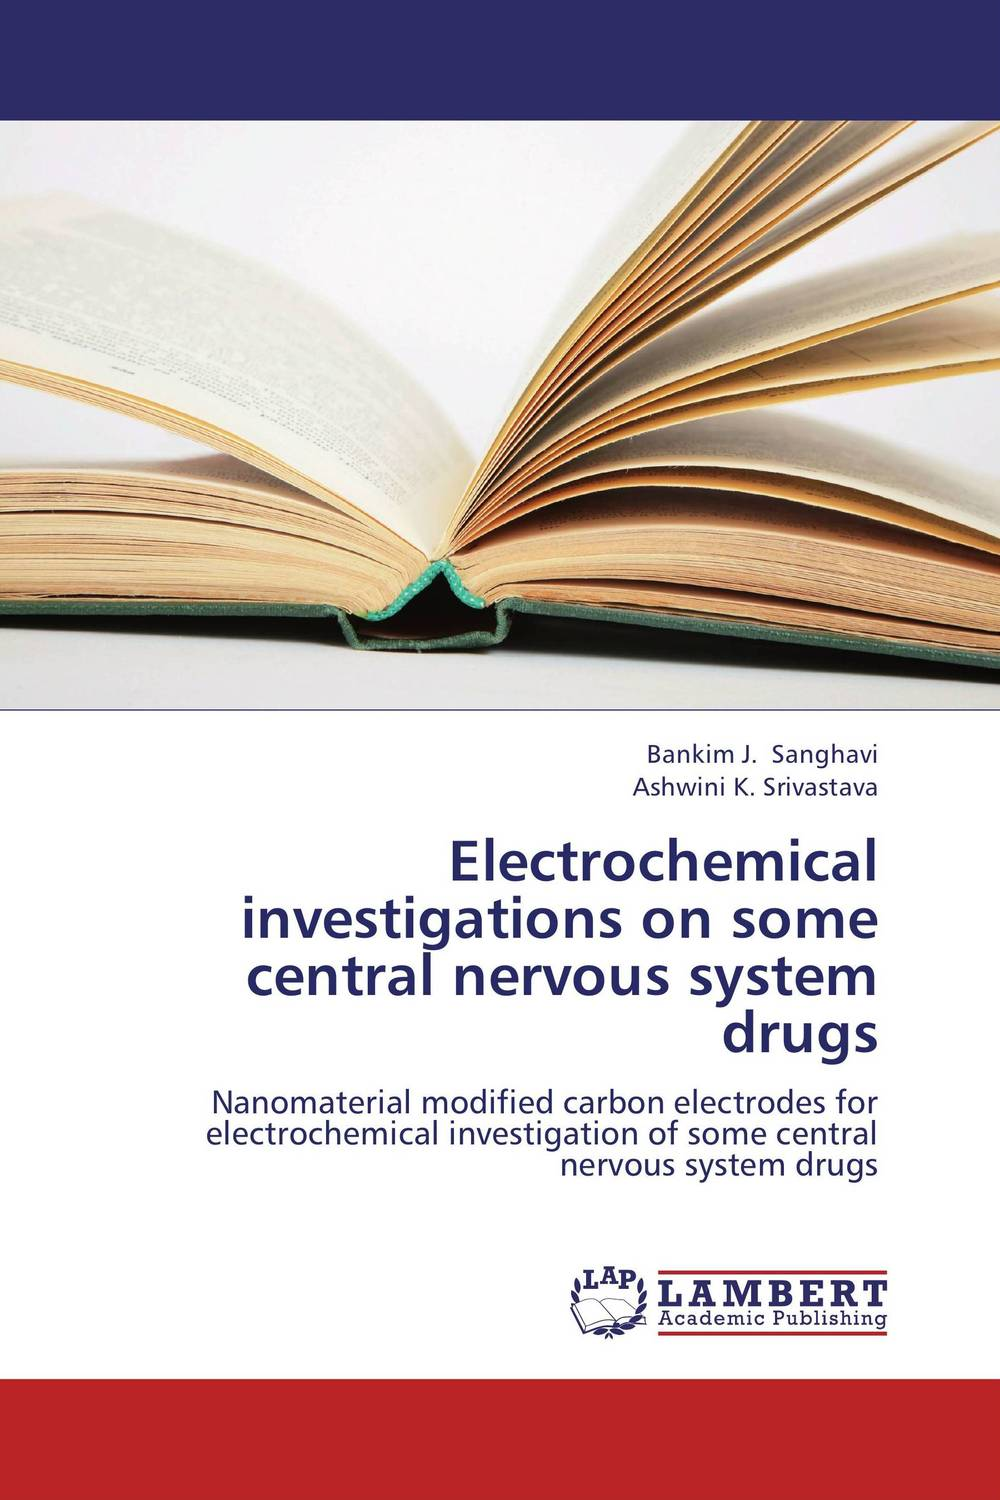 Electrochemical investigations on some central nervous system drugs the cramps the cramps rockinnreelininaucklandnewzealandxxx lp